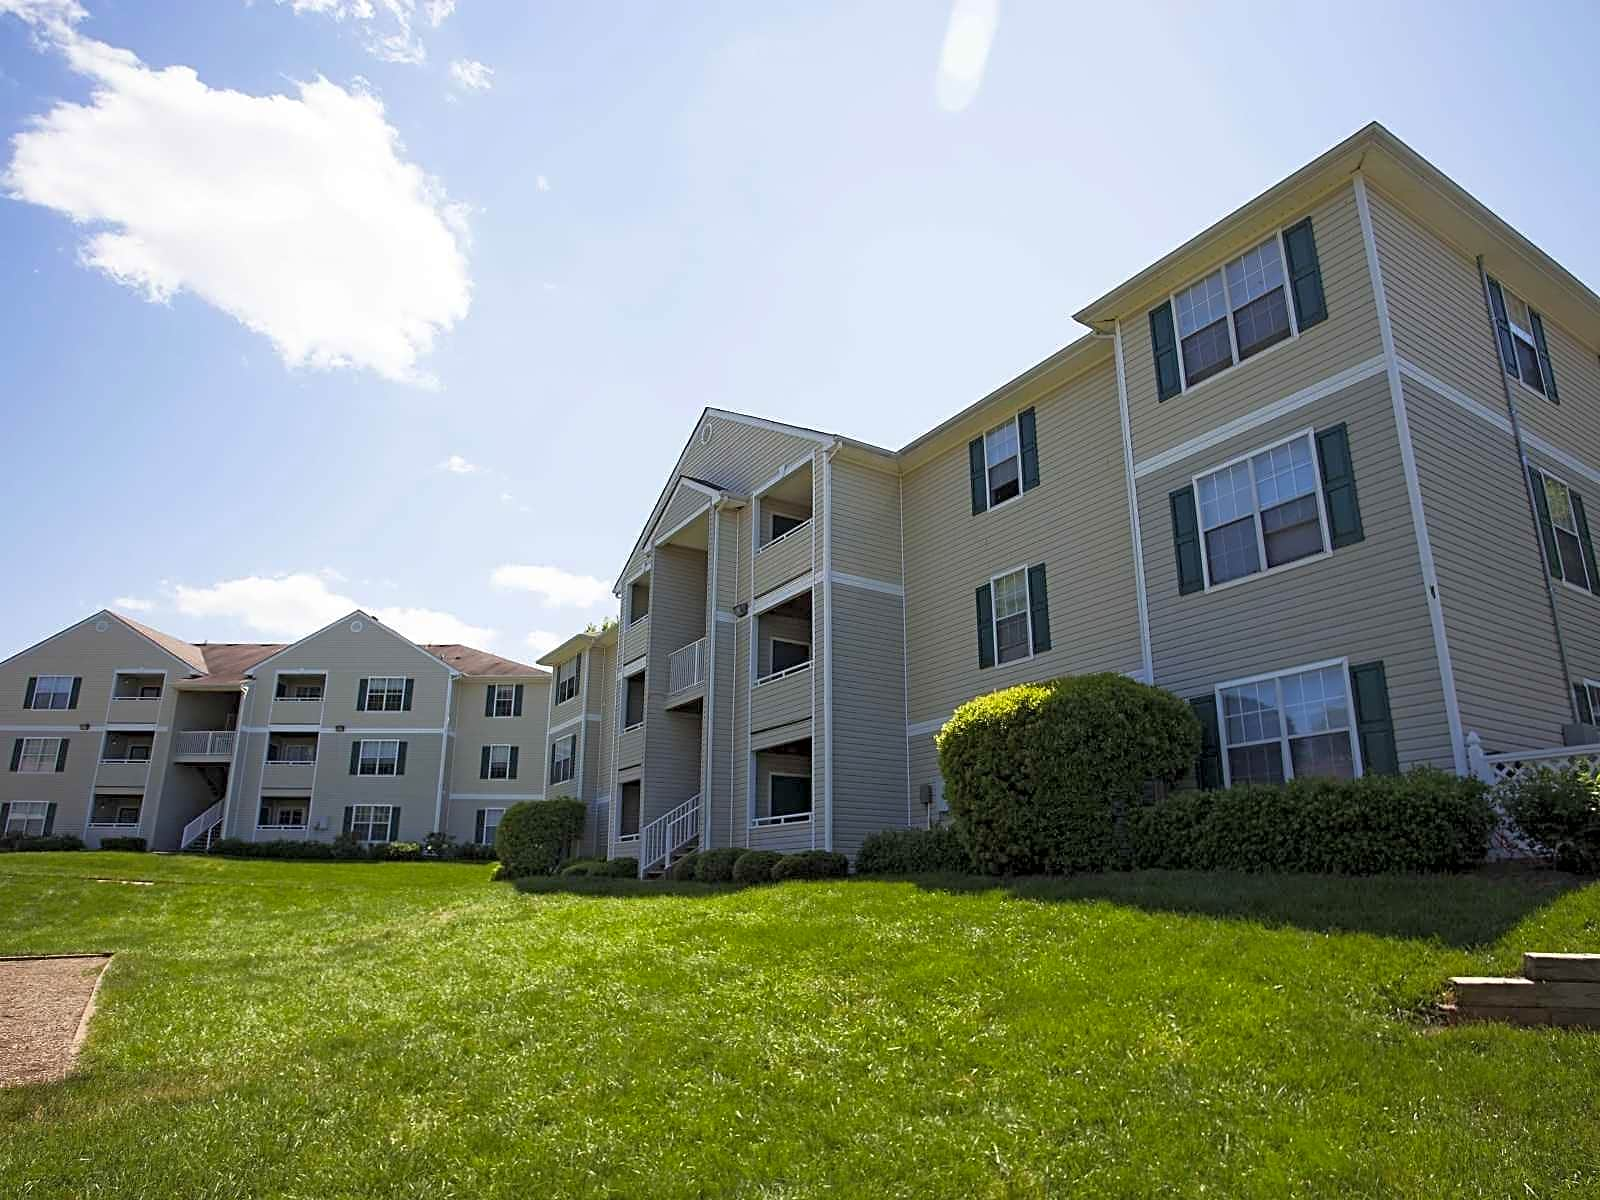 Apartments Near Davidson Parkview Apartments for Davidson College Students in Davidson, NC